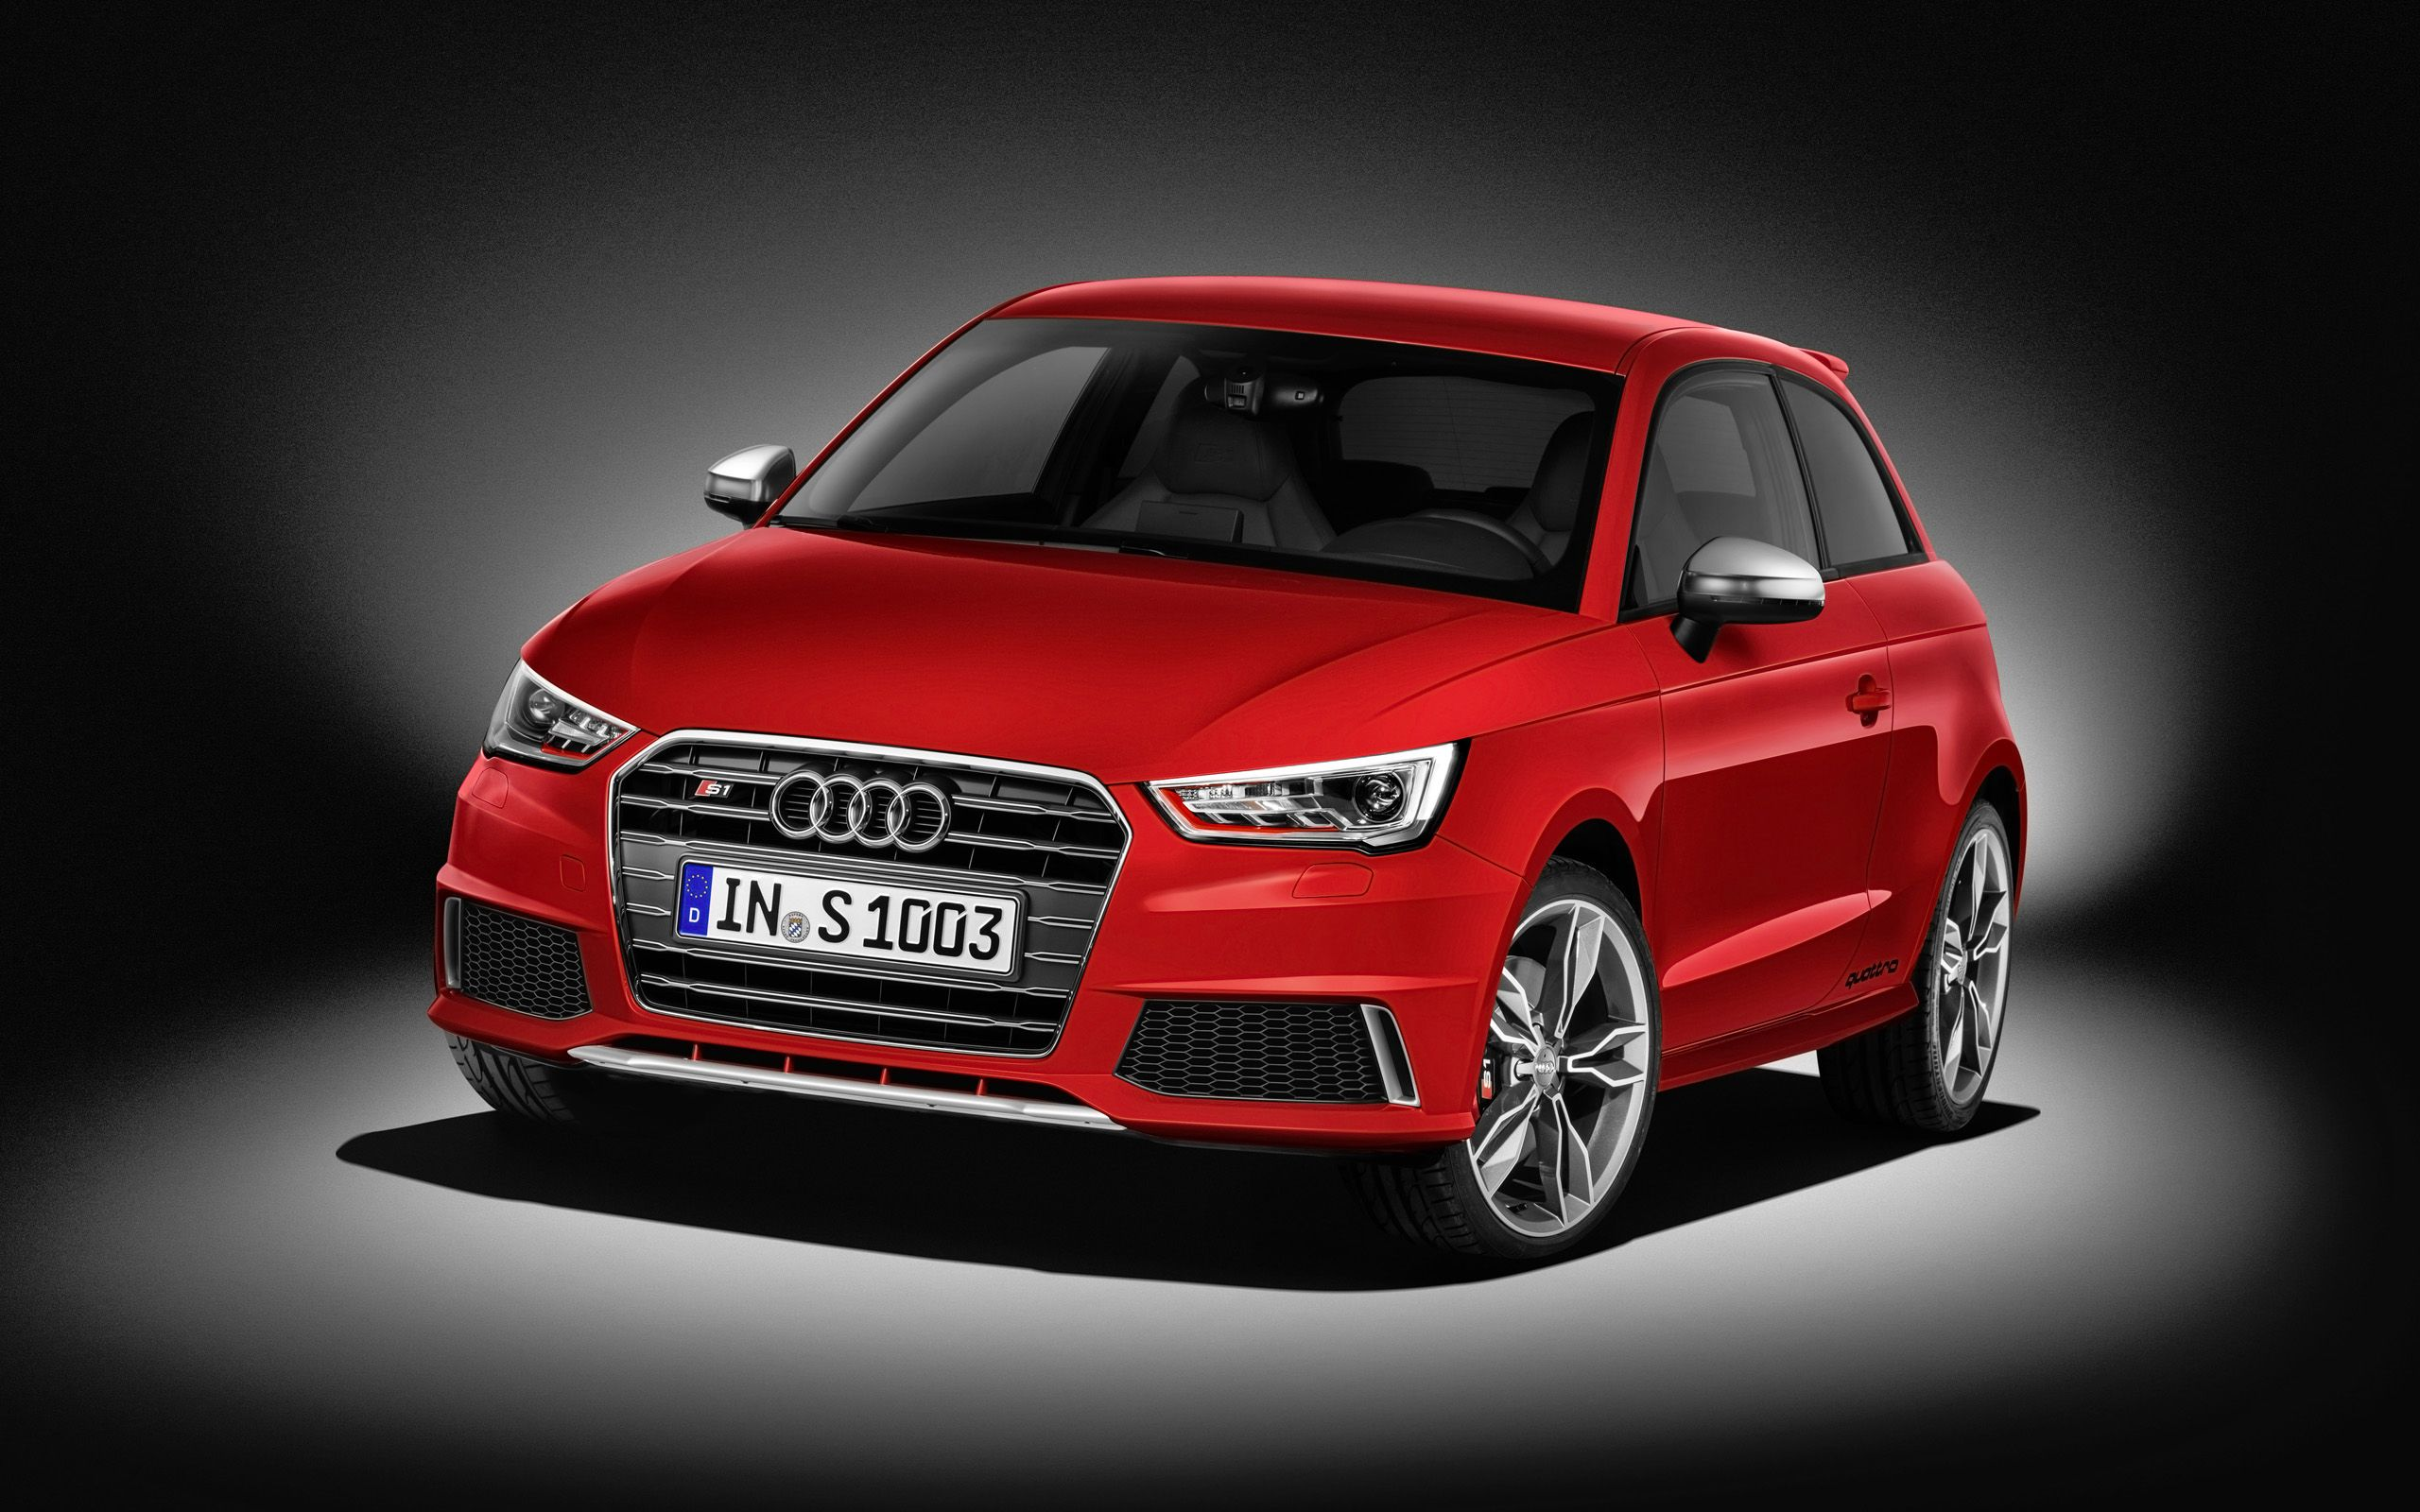 2014 Audi S1 Wallpaper Free Download. Resolution 2560x1600 px - GreatCarWallpaper ID 454